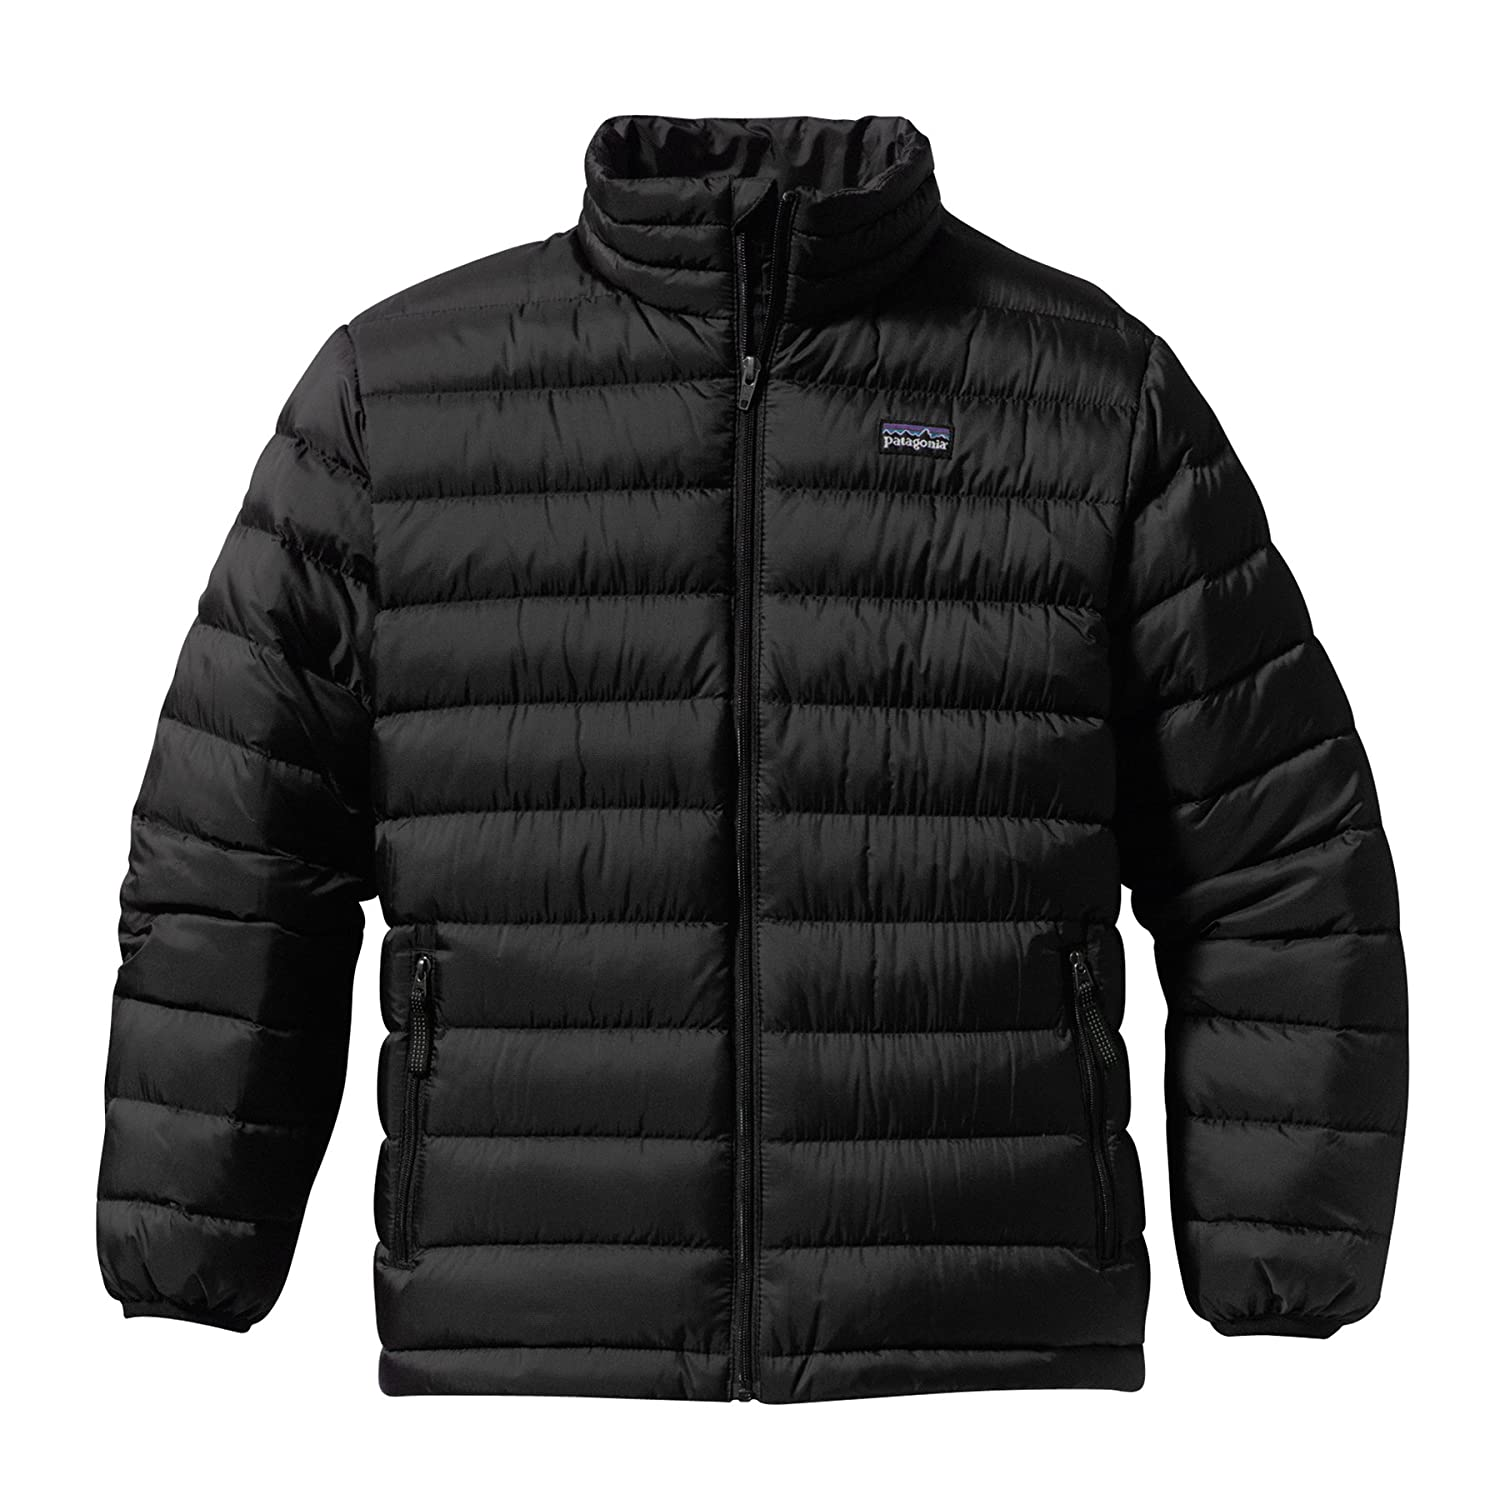 29a24424af3b Amazon.com  Patagonia Down Sweater Jacket Black L -Kids  Sports   Outdoors